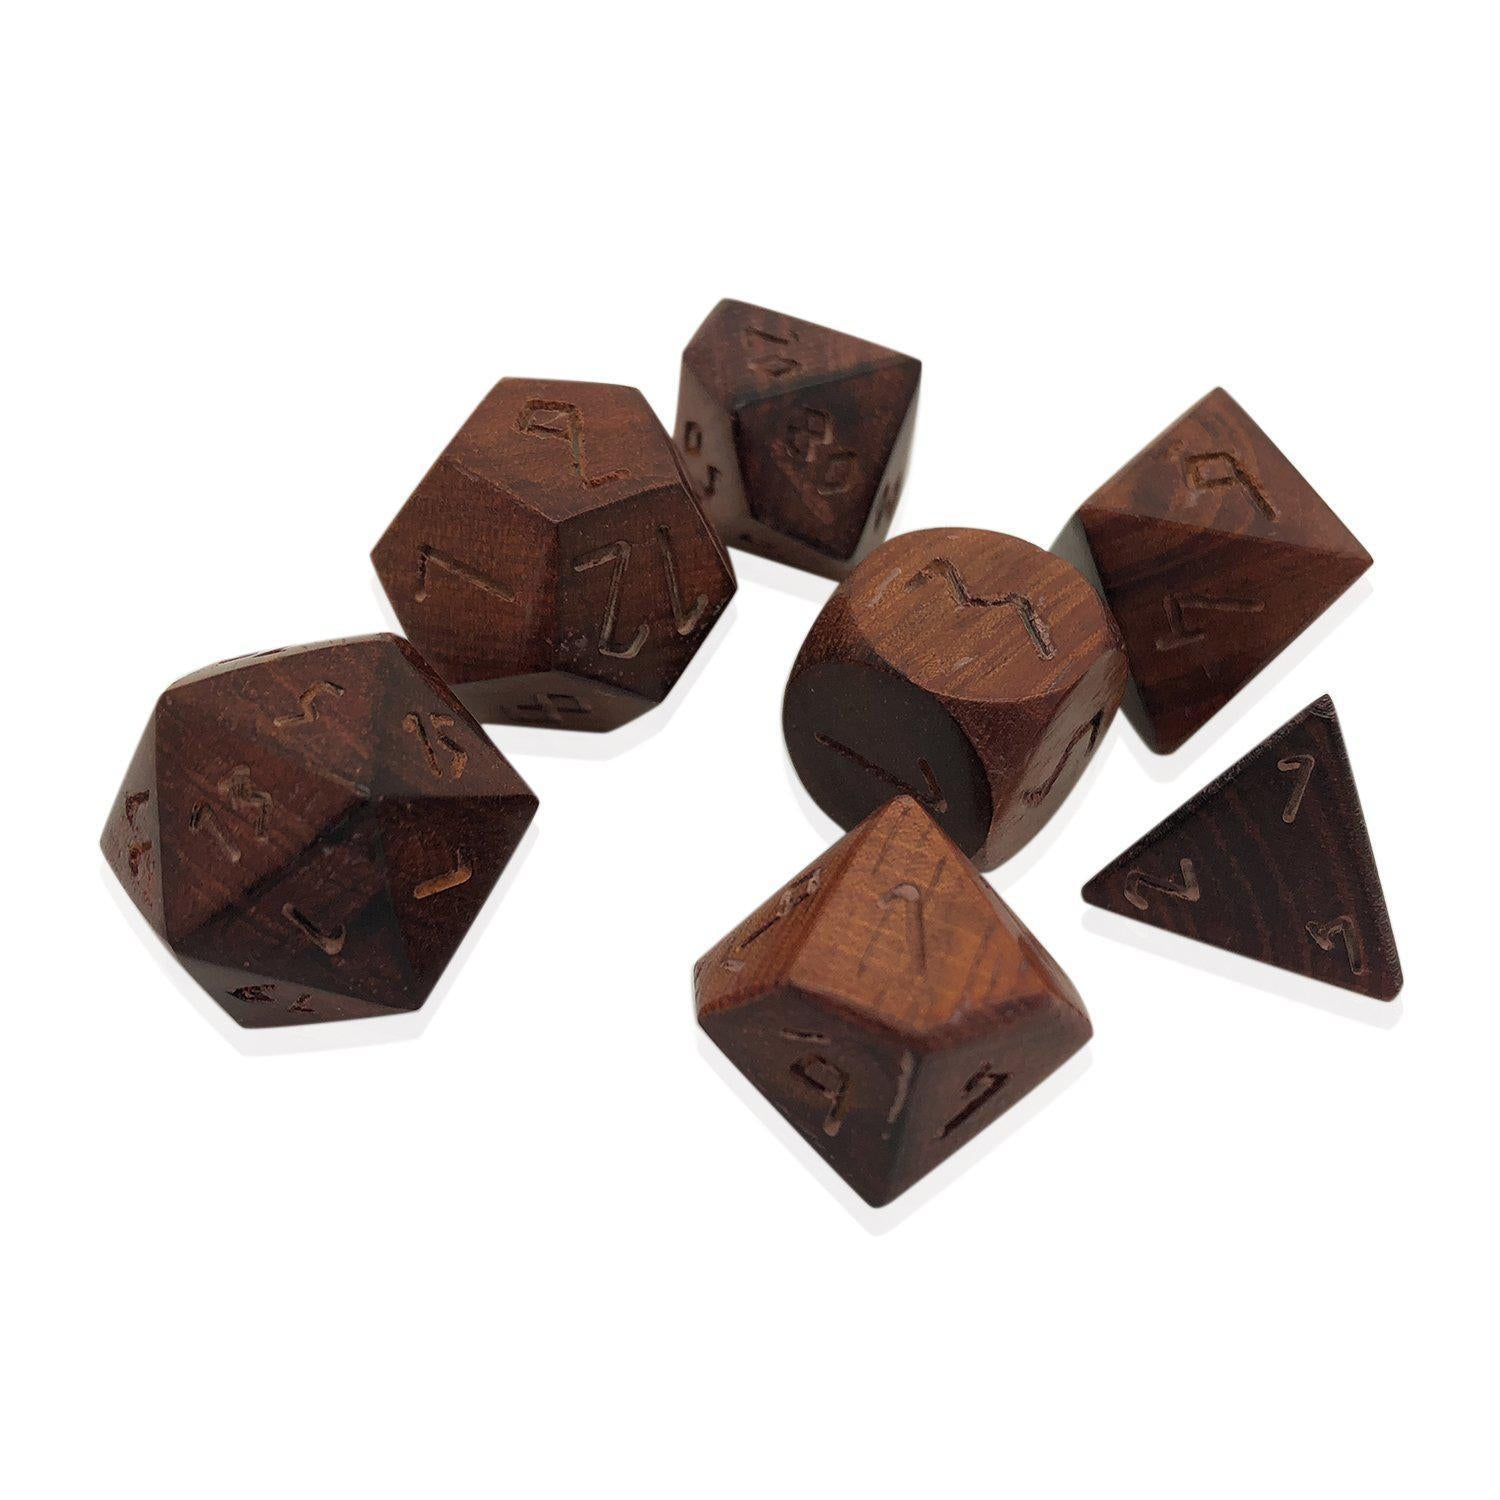 Rengas Tiger - 7 Piece RPG Wooden Dice Set-Dice-Norse Foundry-DND Dice-Polyhedral Dice-D20-Metal Dice-Precision Dice-Luxury Dice-Dungeons and Dragons-D&D-